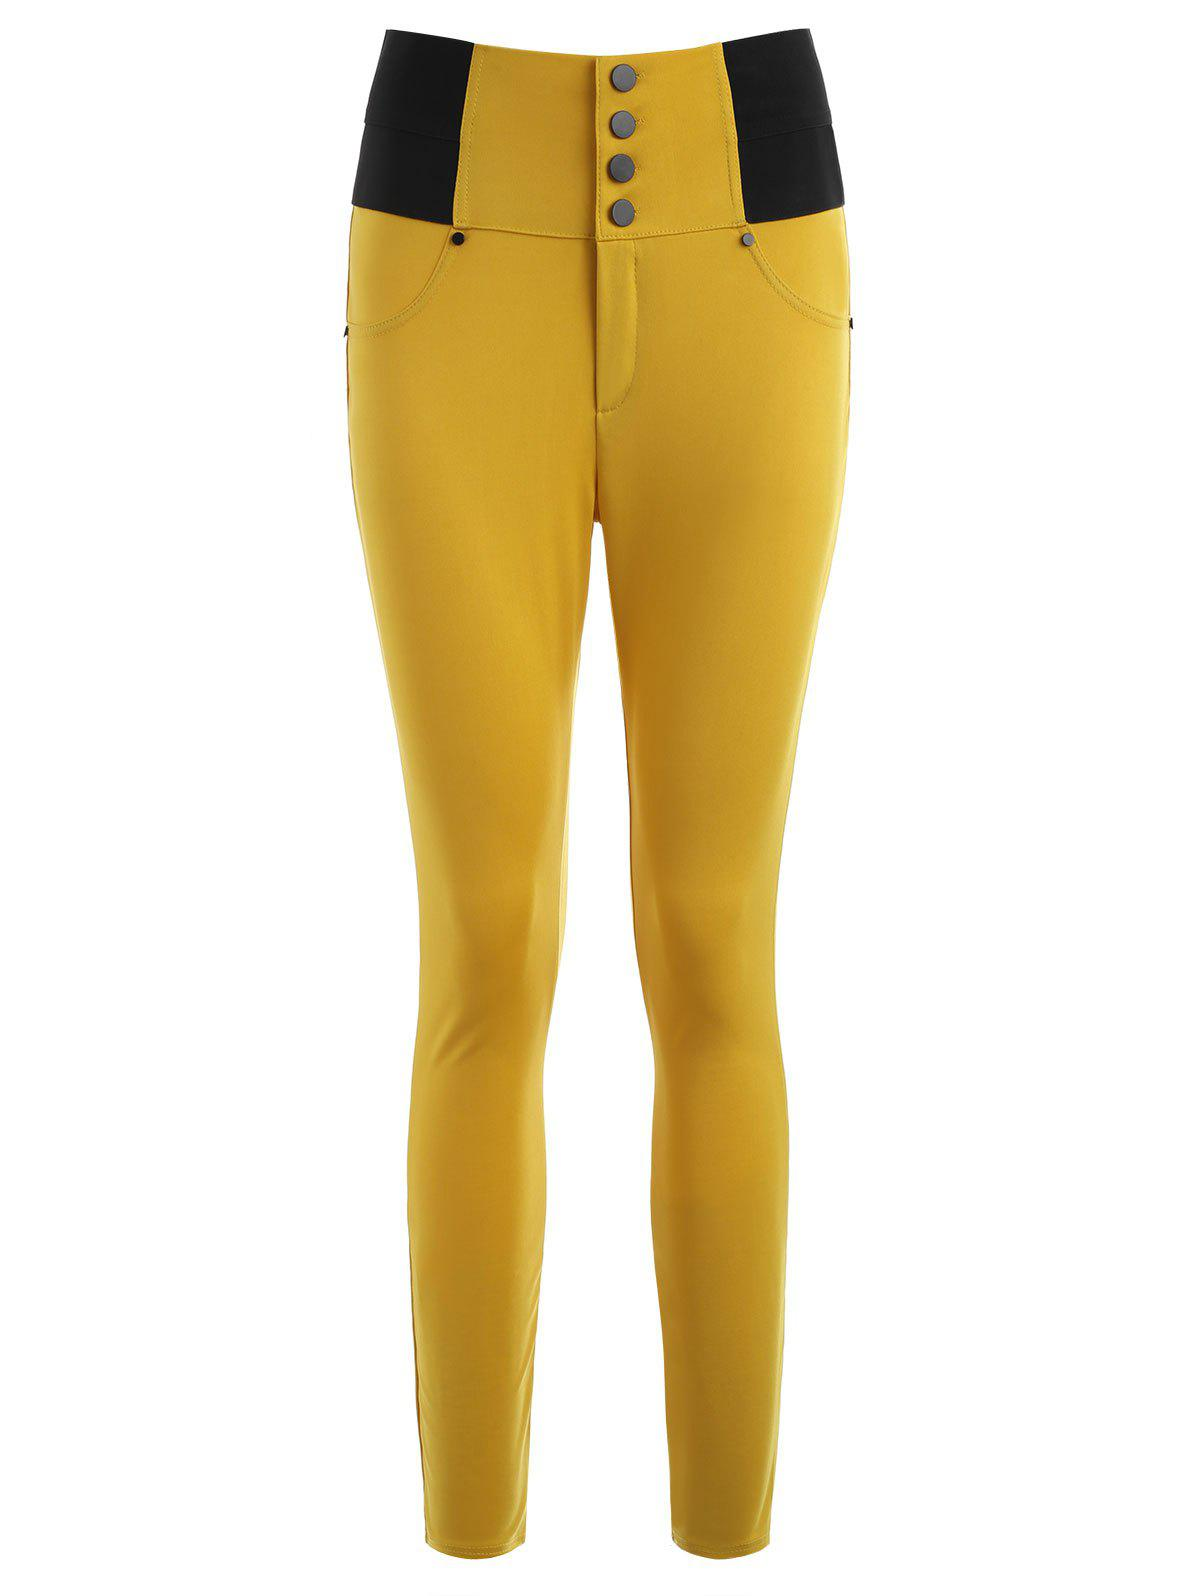 Skinny High-waisted Cigarette Pants - BEE YELLOW S